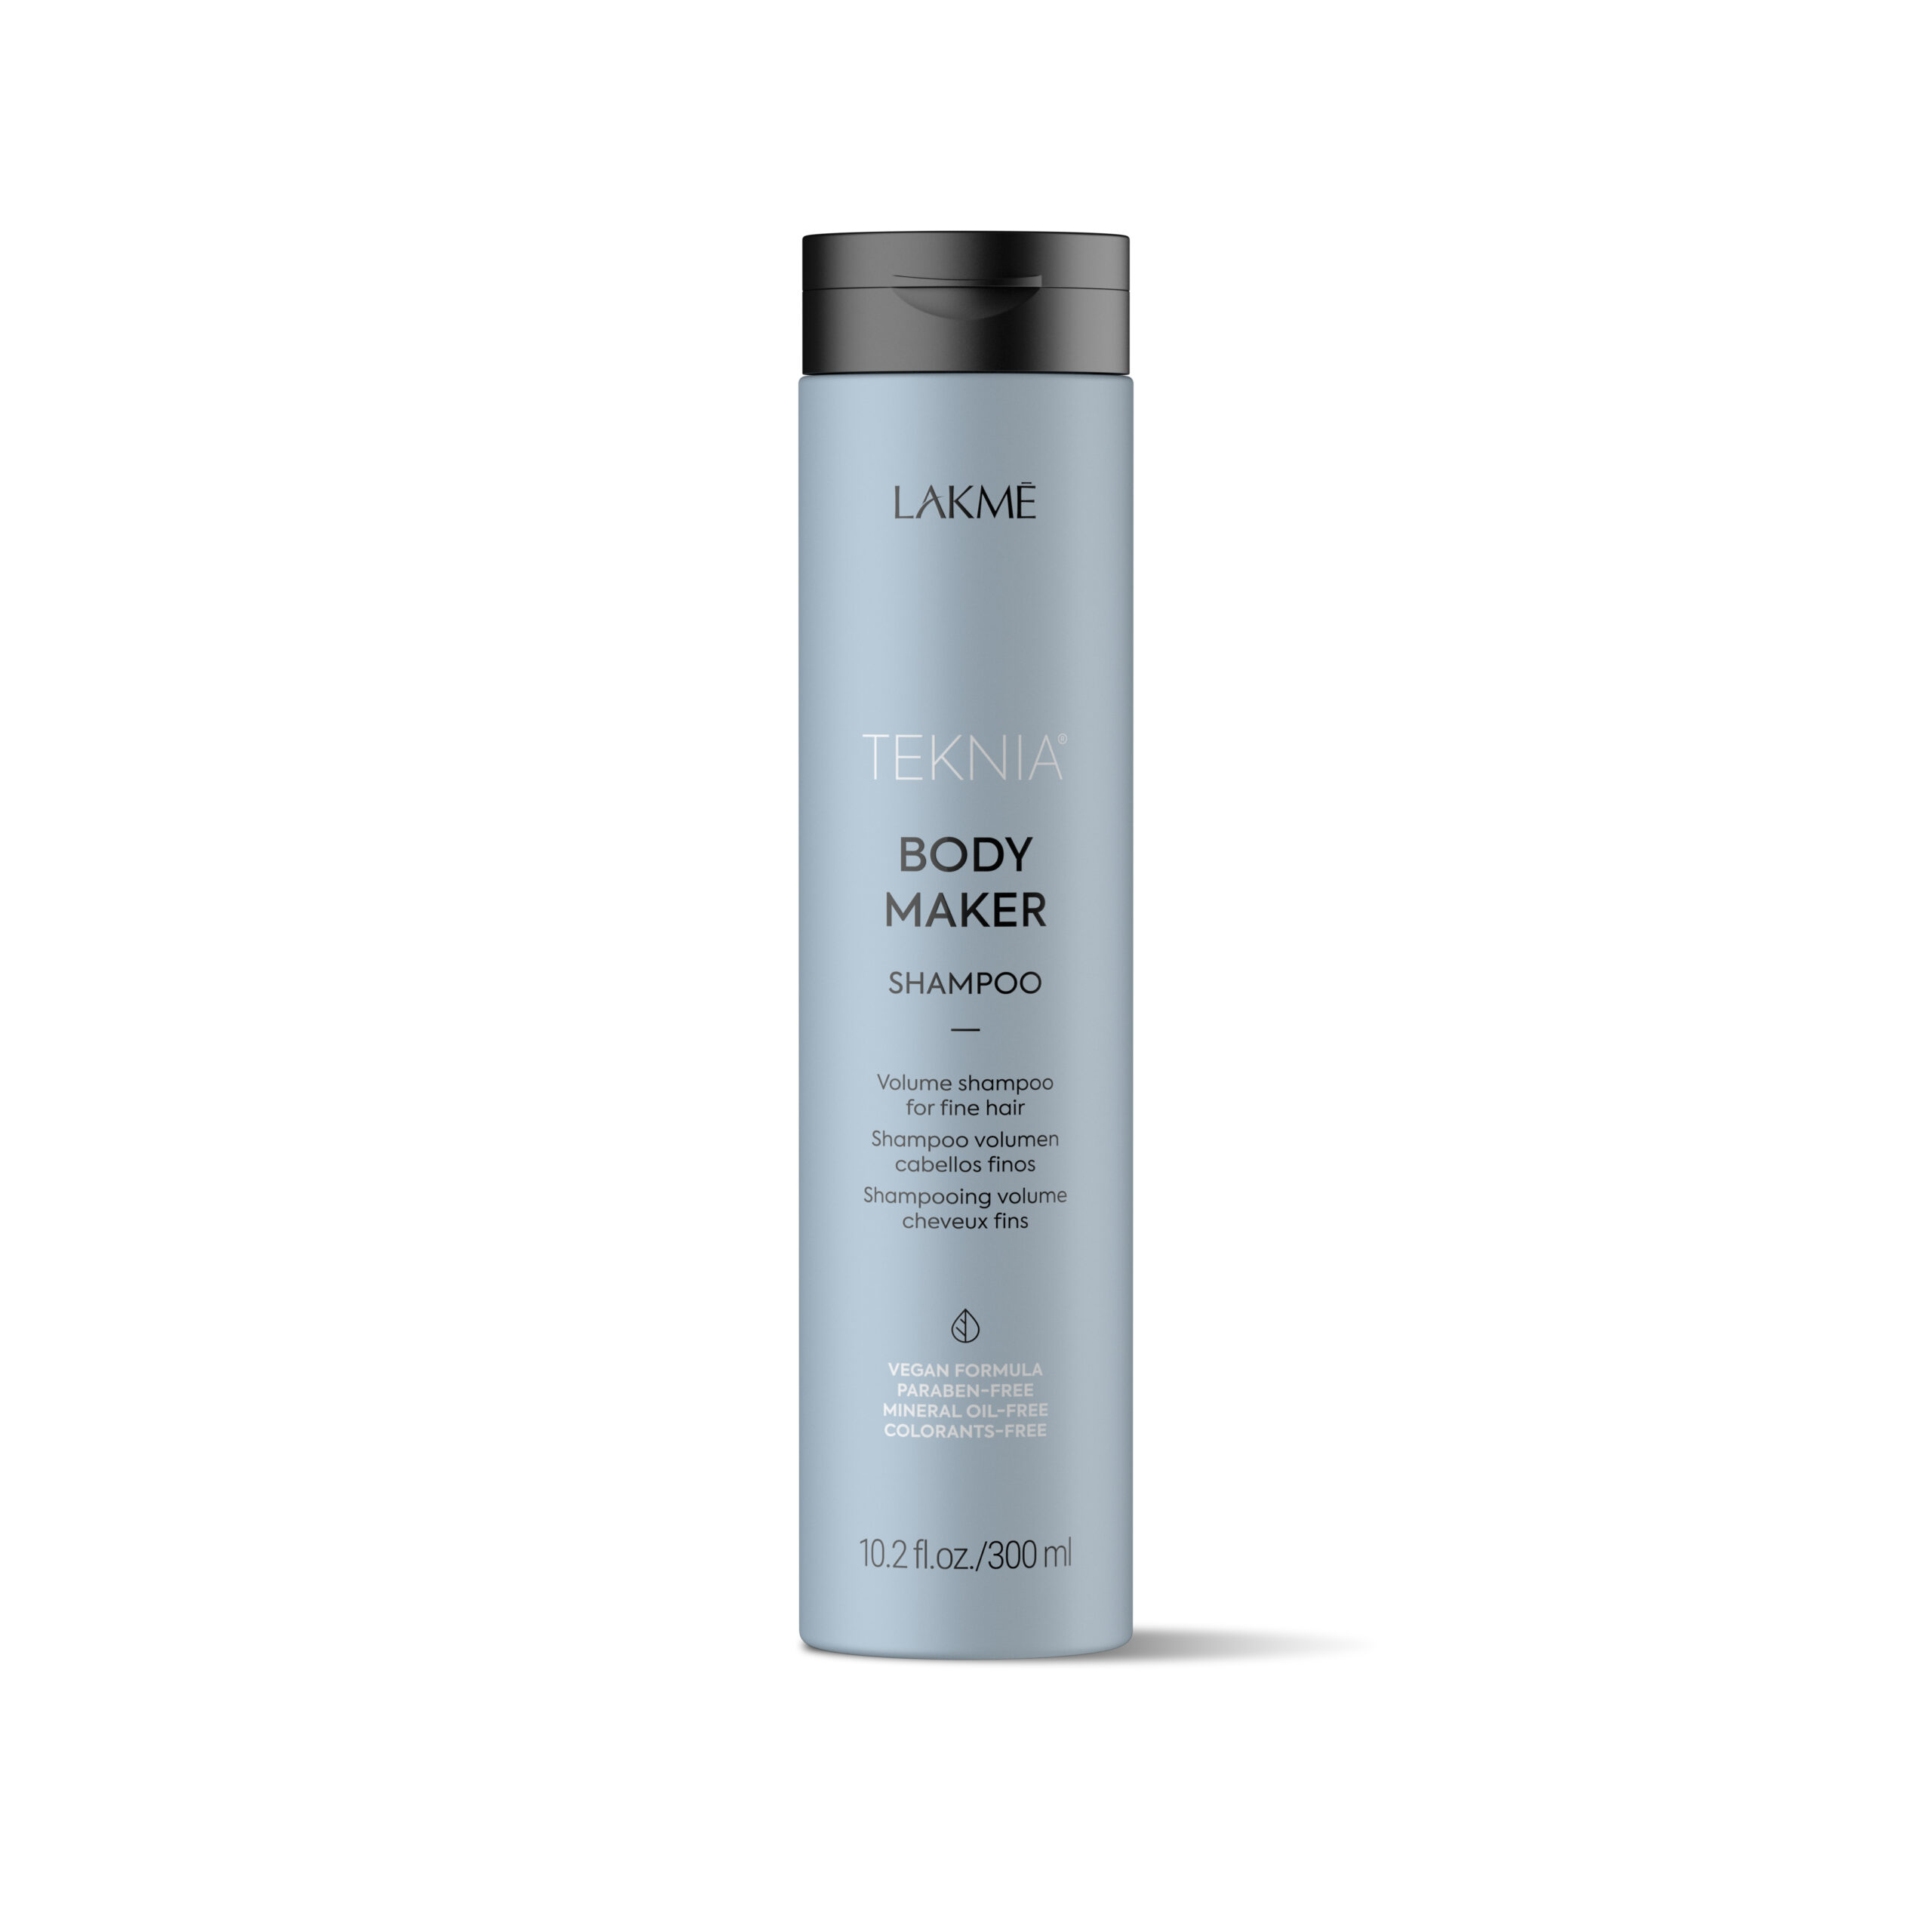 BODY MAKER Shampoo 300 ml